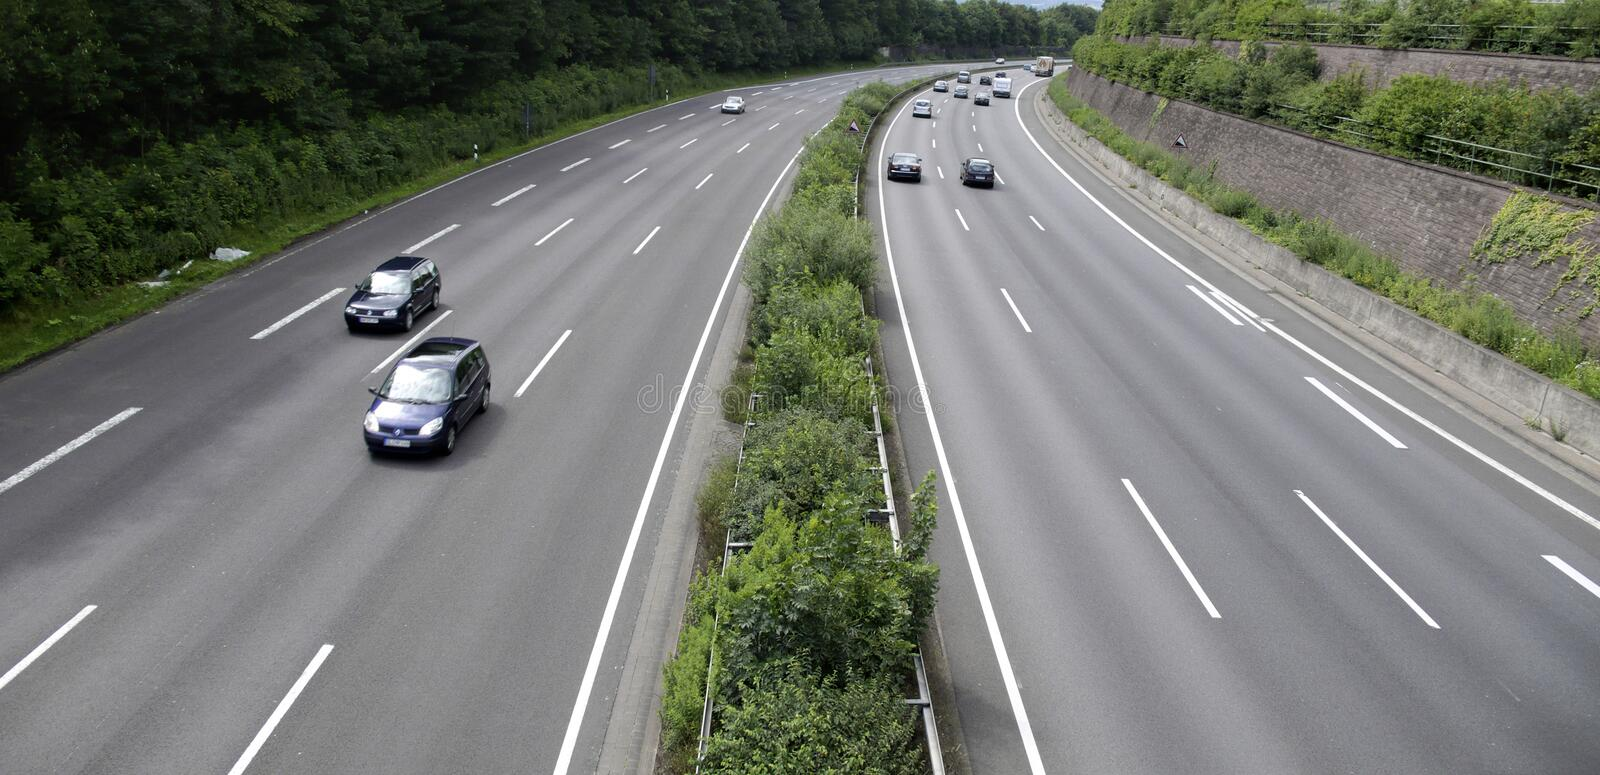 Highway. / Autobahn going into a curve stock photo